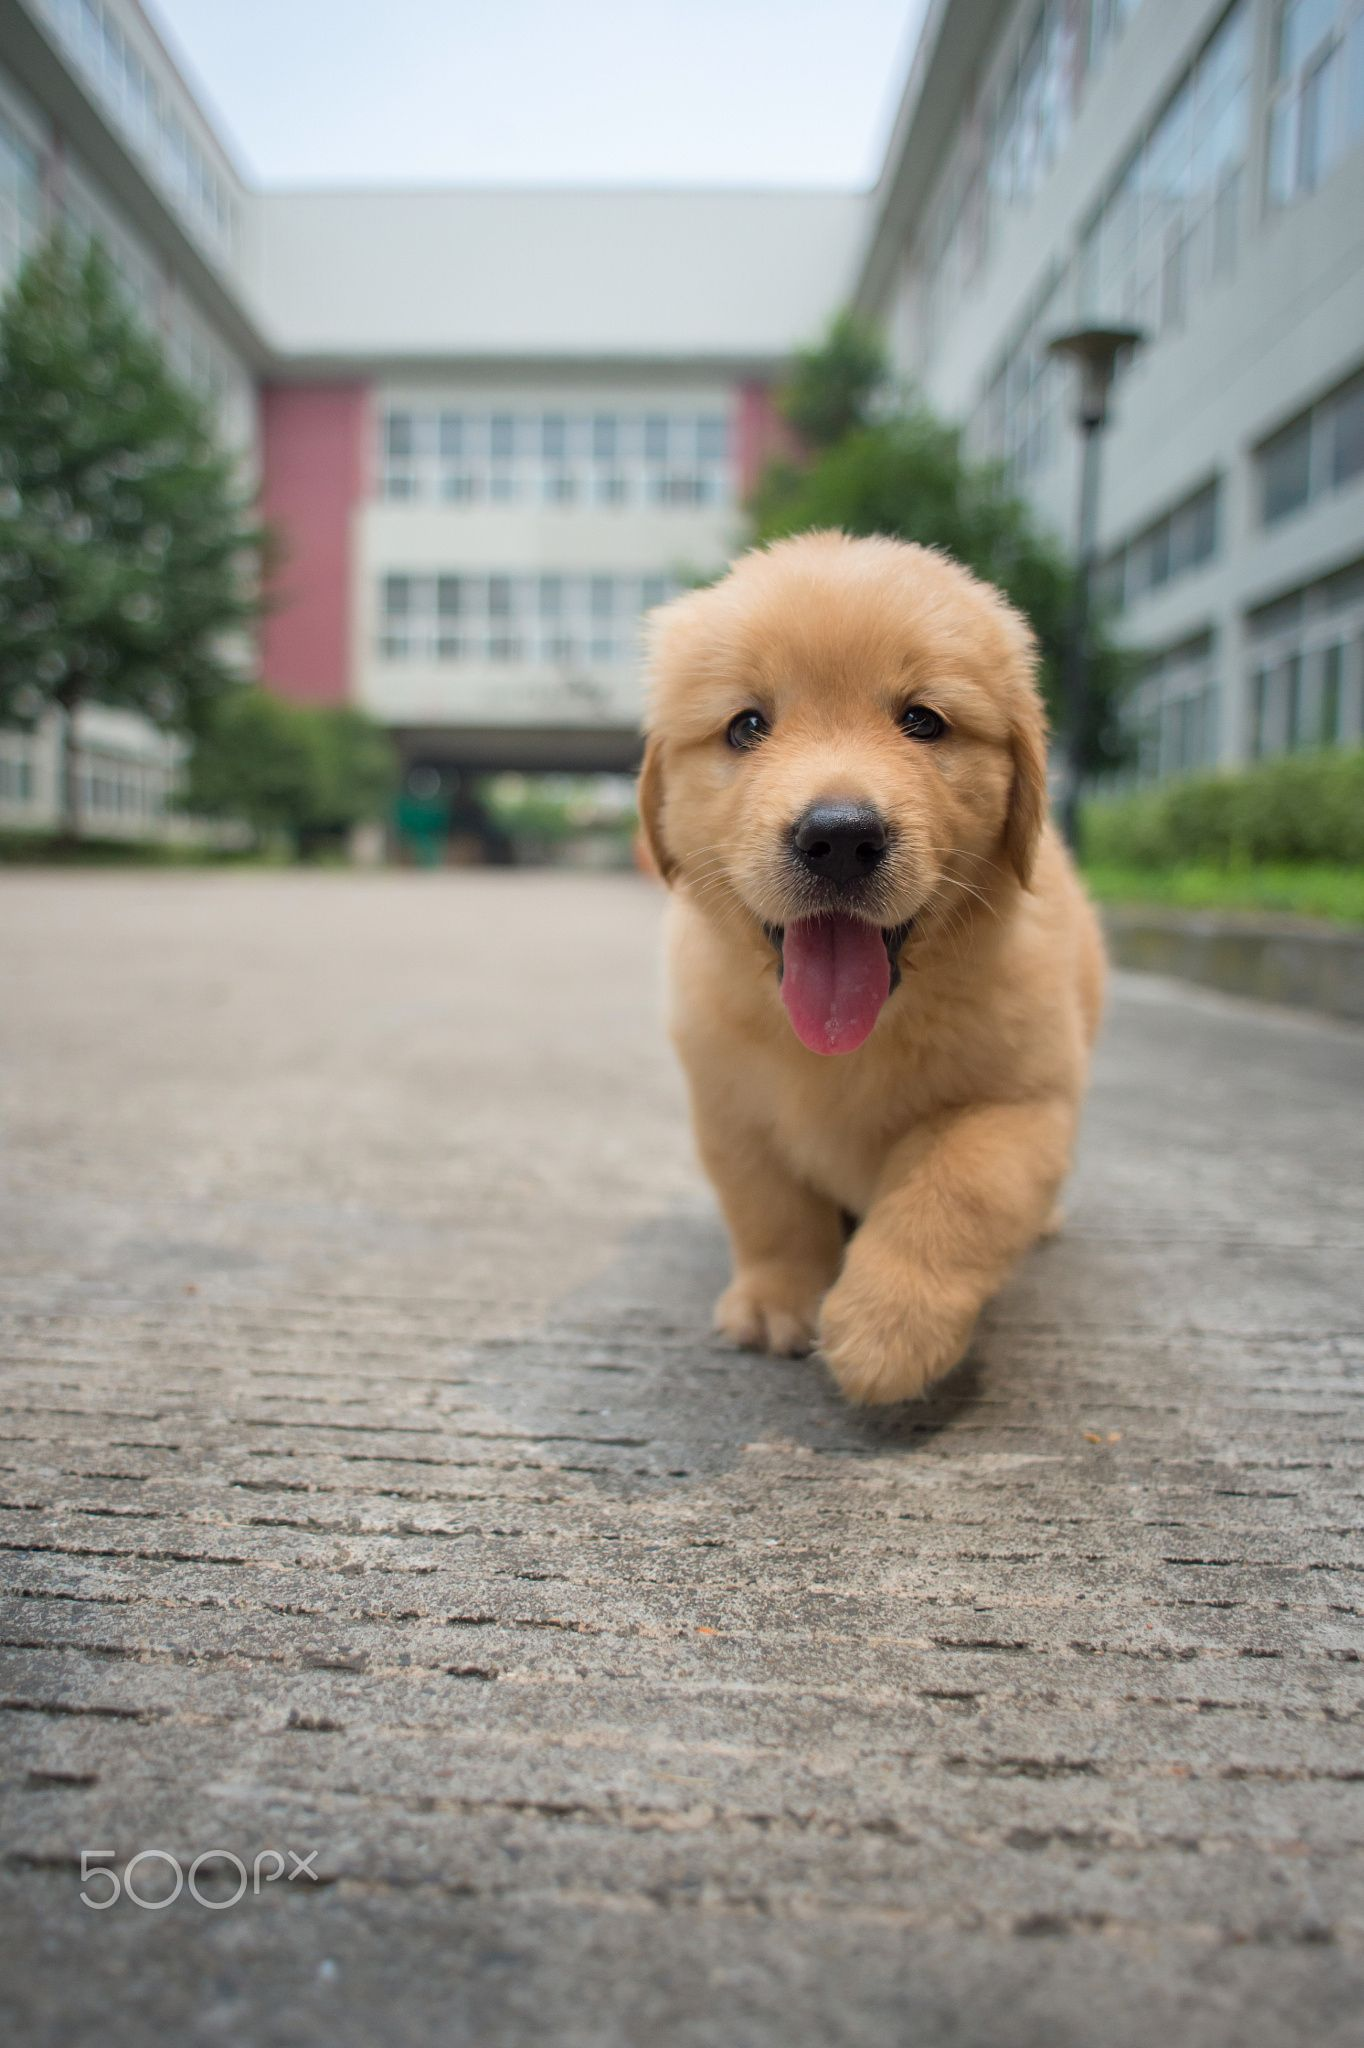 Sweet Baby Retriever Puppy Cute Puppies Cute Baby Animals